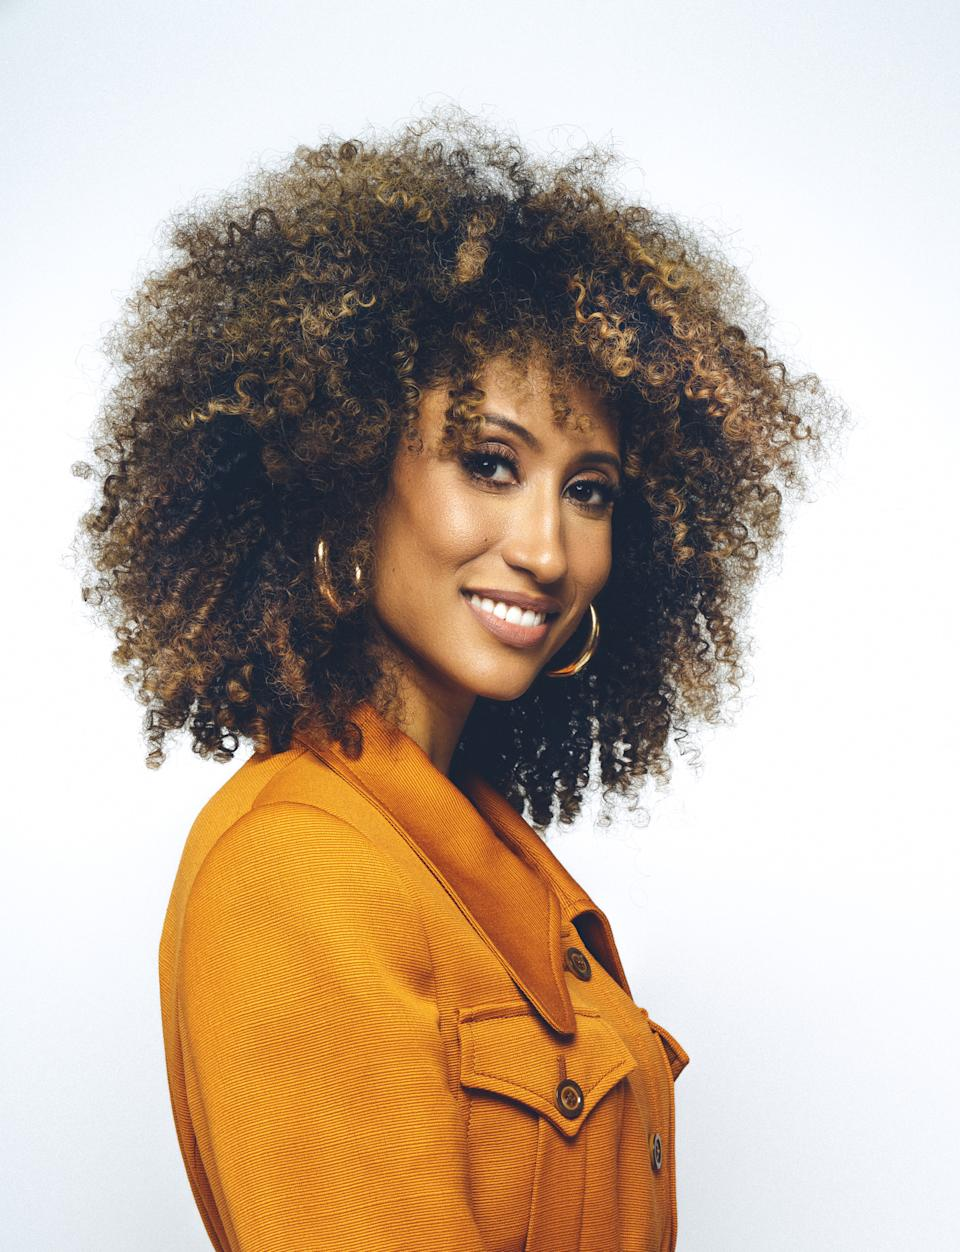 Elaine Welteroth teams up with Jane Walker by Johnnie Walker for First Women campaign celebrating and inspiring women breaking boundaries.